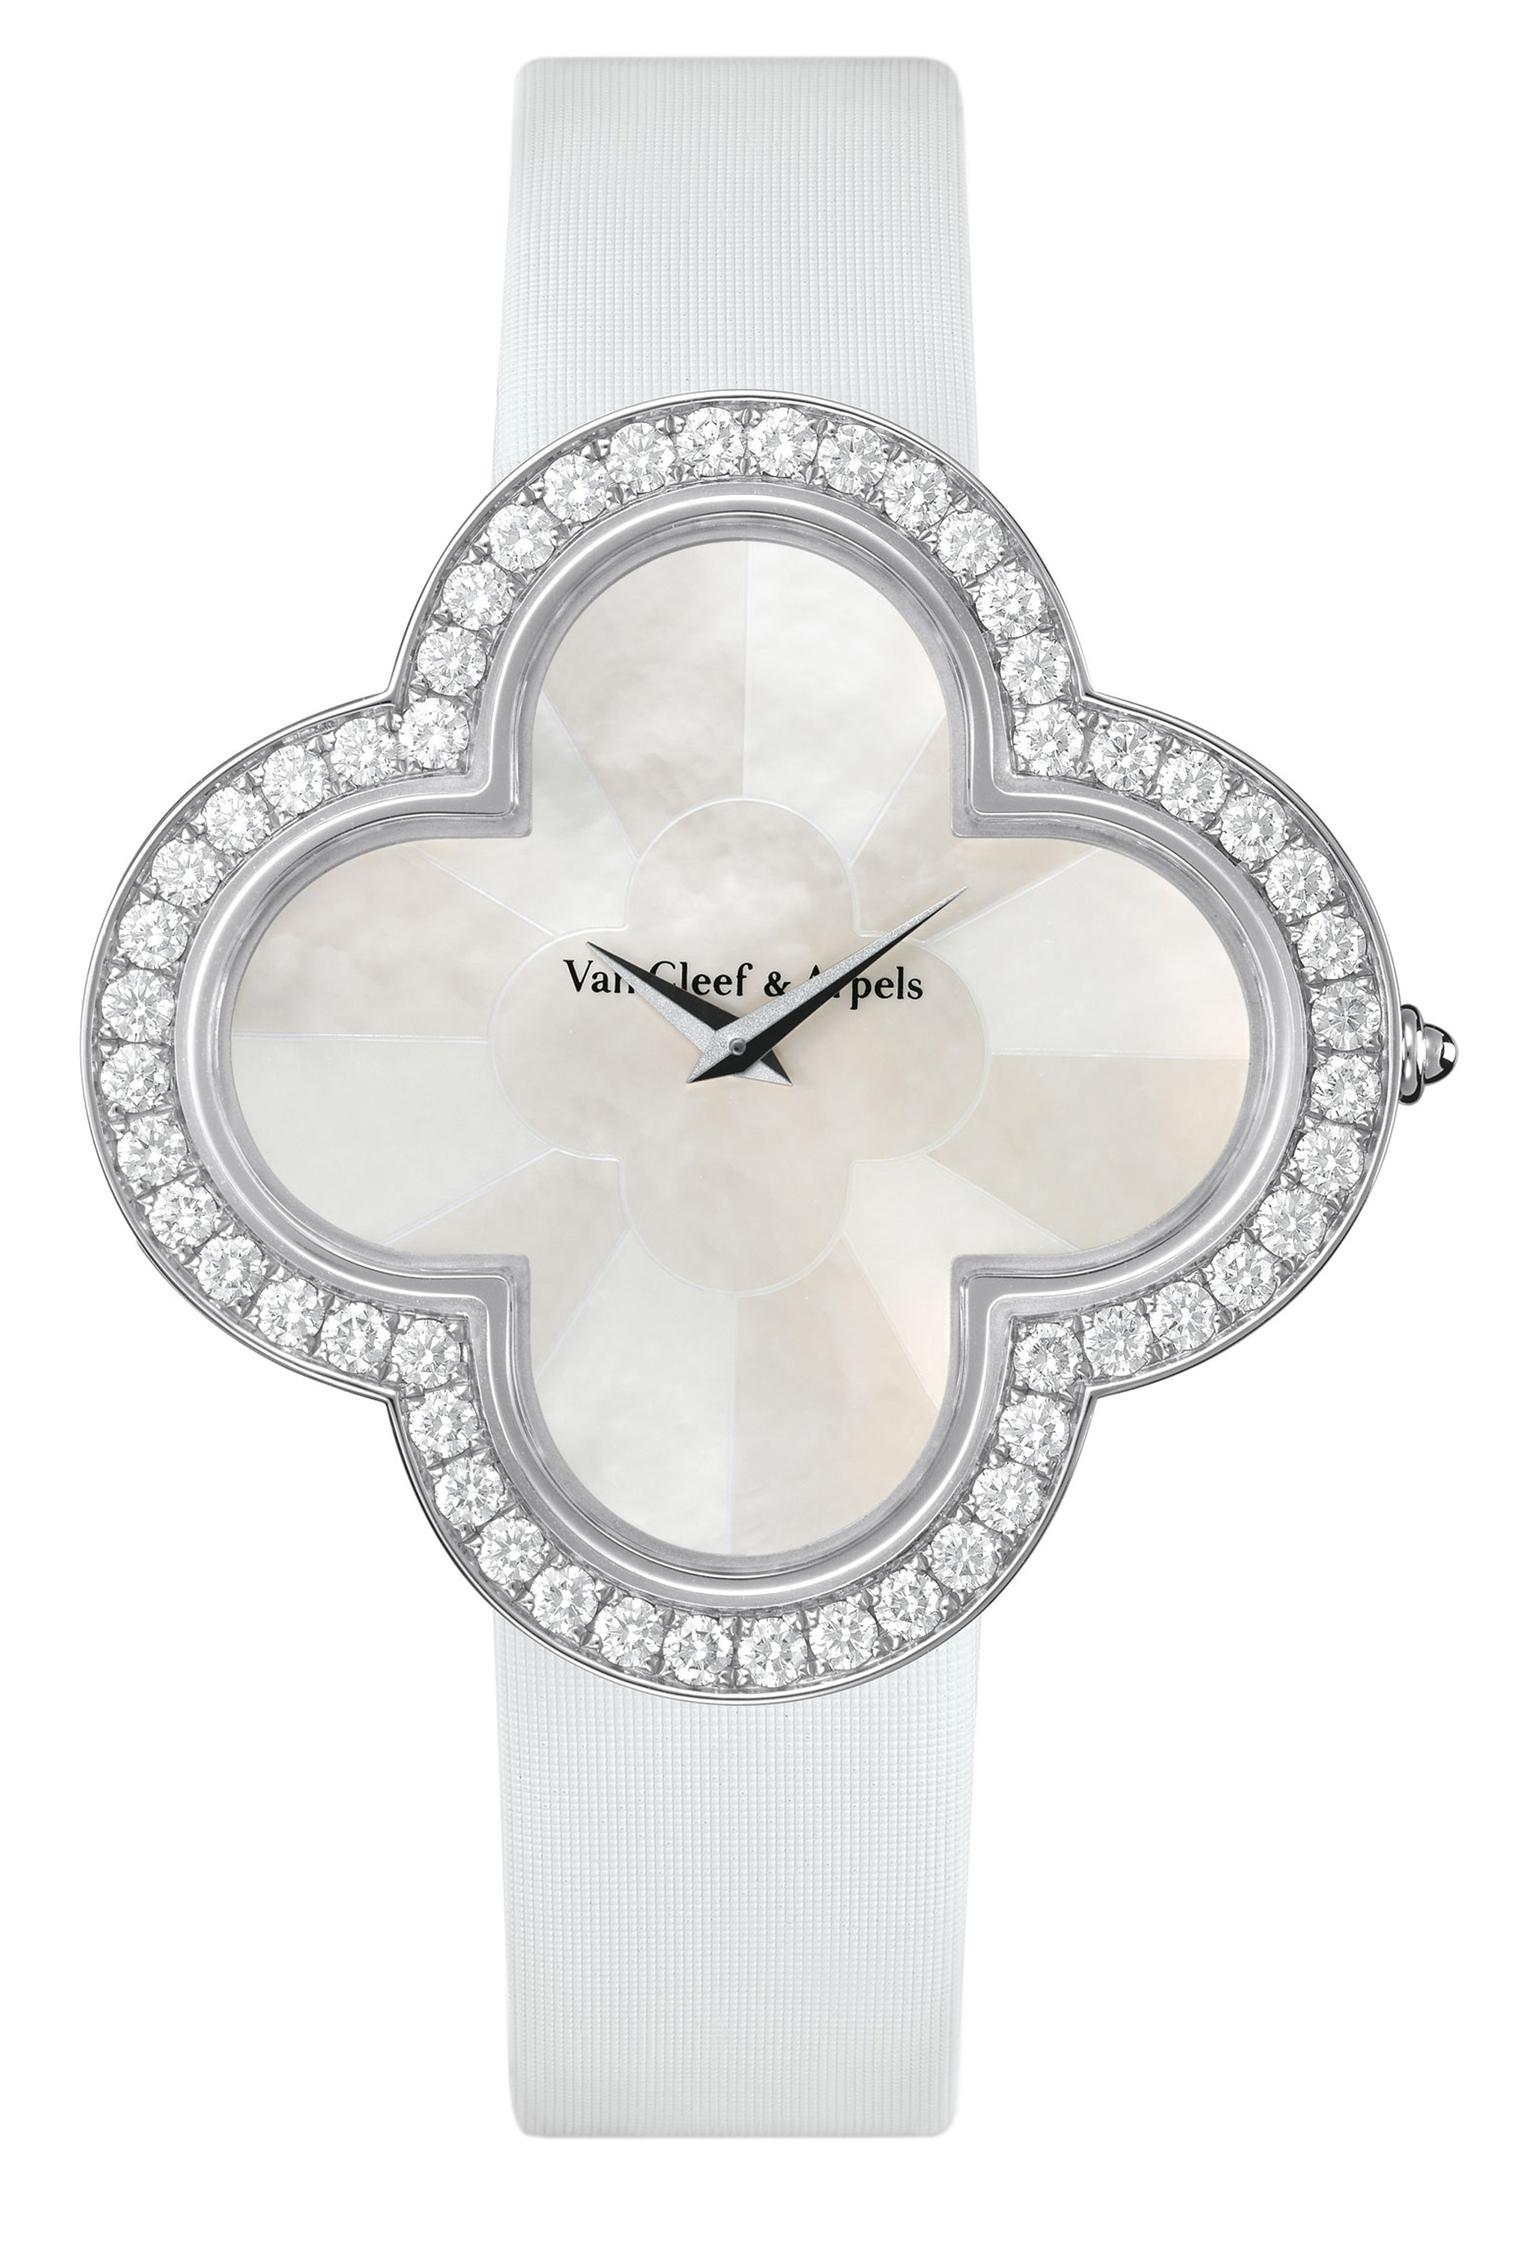 Van Cleef & Arpels white gold Alhambra Talisman watch